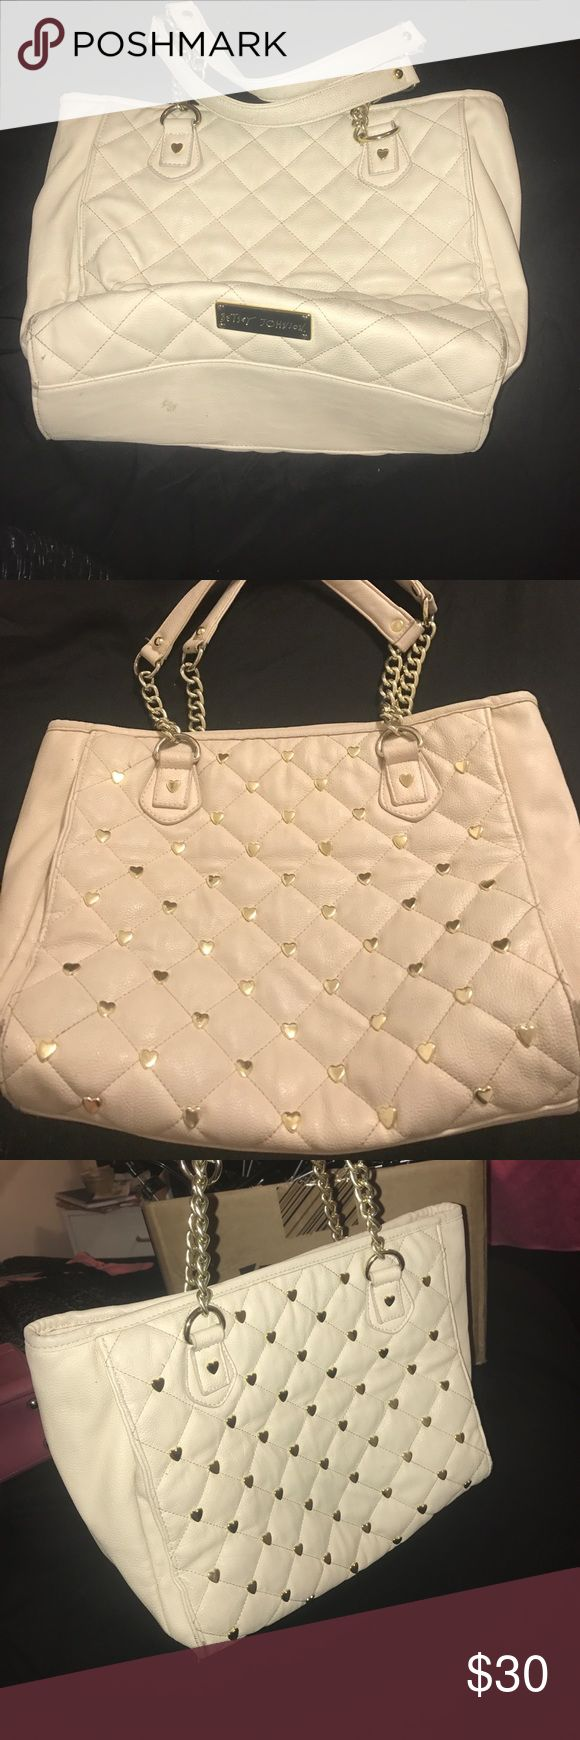 Betsey Johnson handbag This is a good used condition Betsy Johnson handbag in a cream/off-white color. Loved it and I have some scrapes/ scuffs but nothing big at all it has a zipper inside and a cell phone compartment inside as well very cute honestly to get most of the little things out you would just need to wipe it down with a leather cleaner. Betsey Johnson Bags